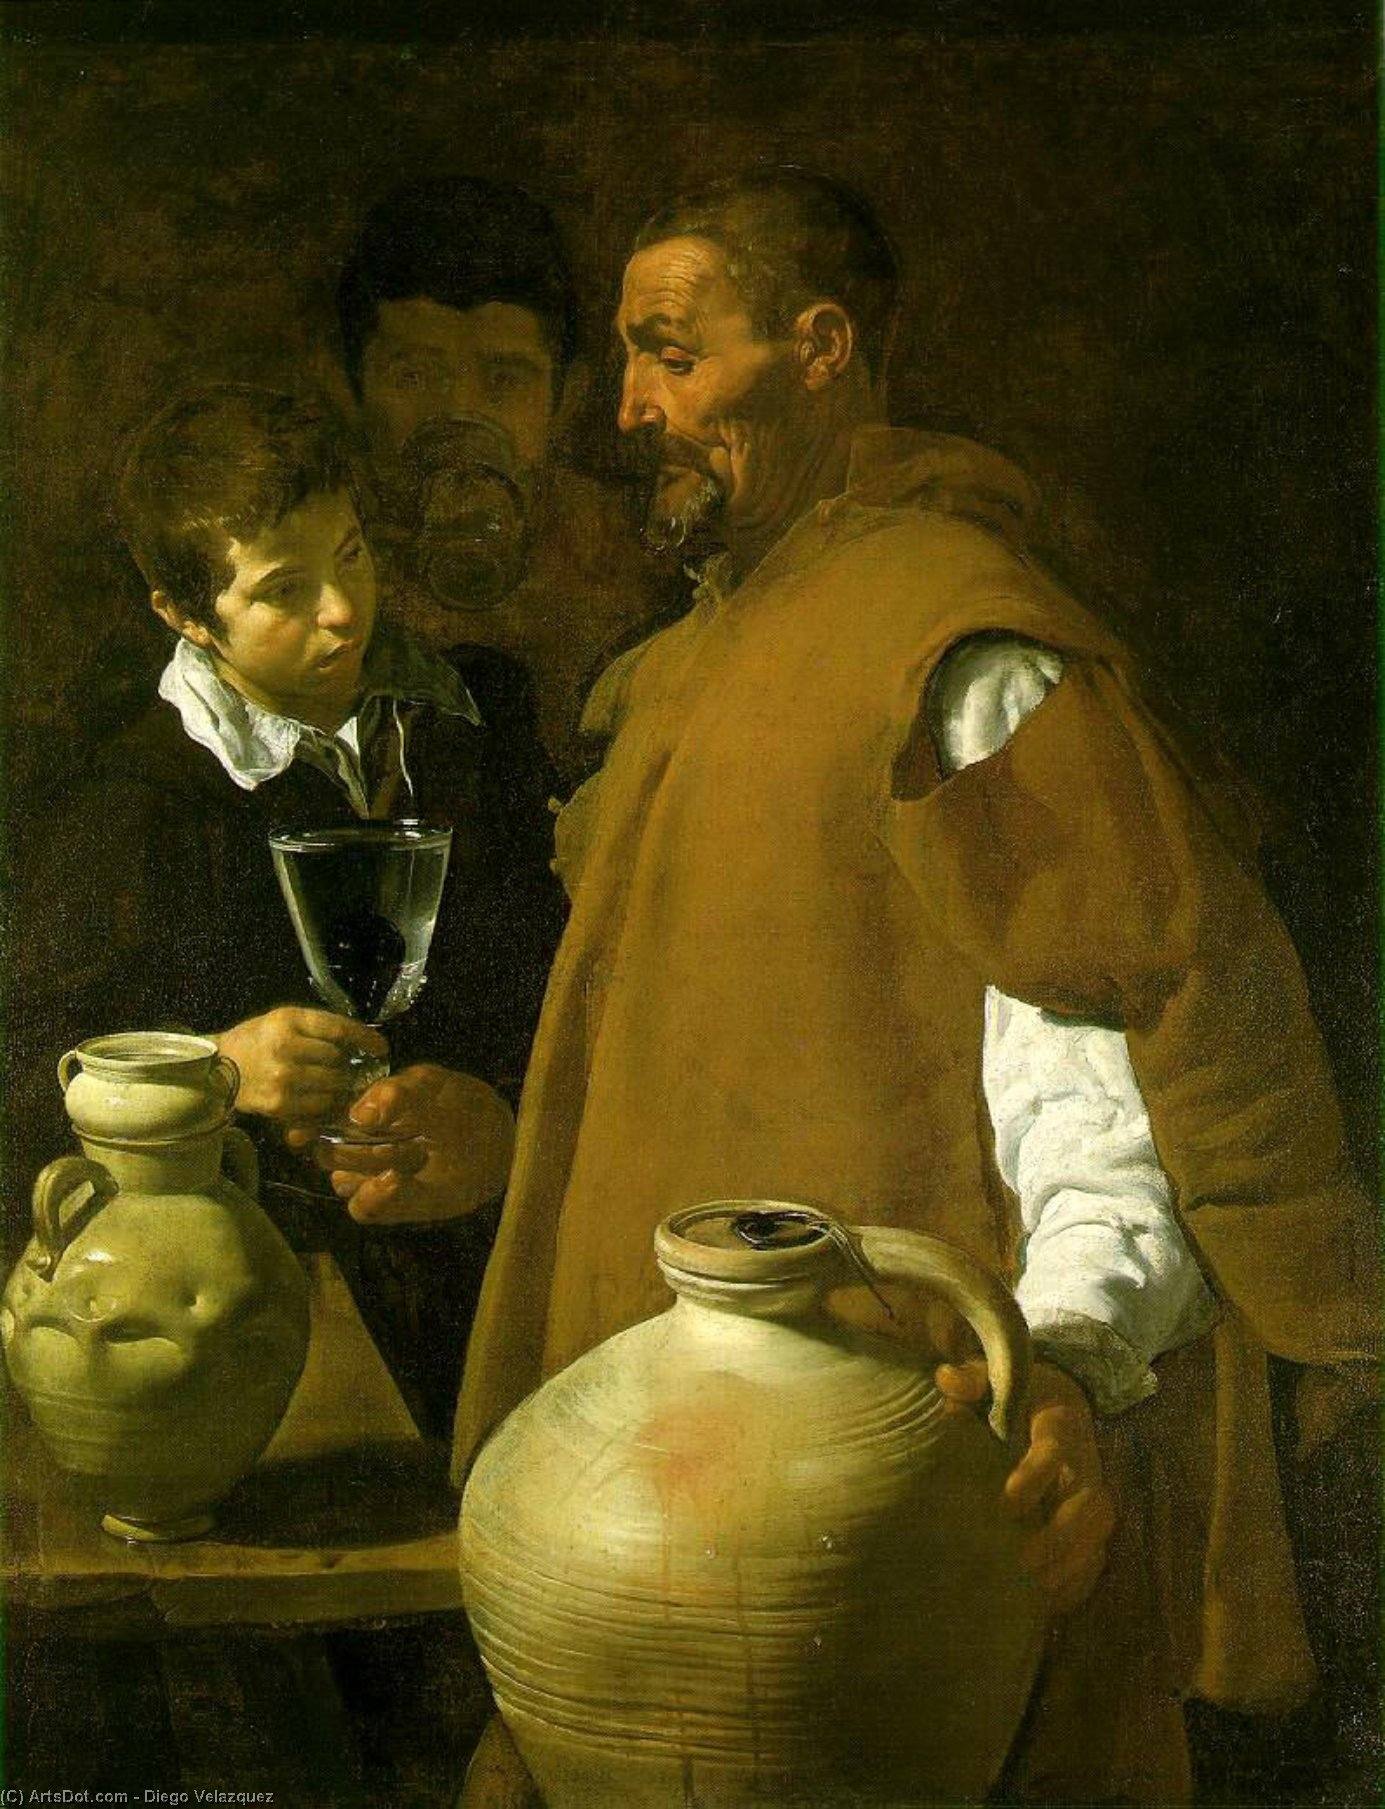 Waterseller séville de Diego Velazquez (1599-1660, Spain)